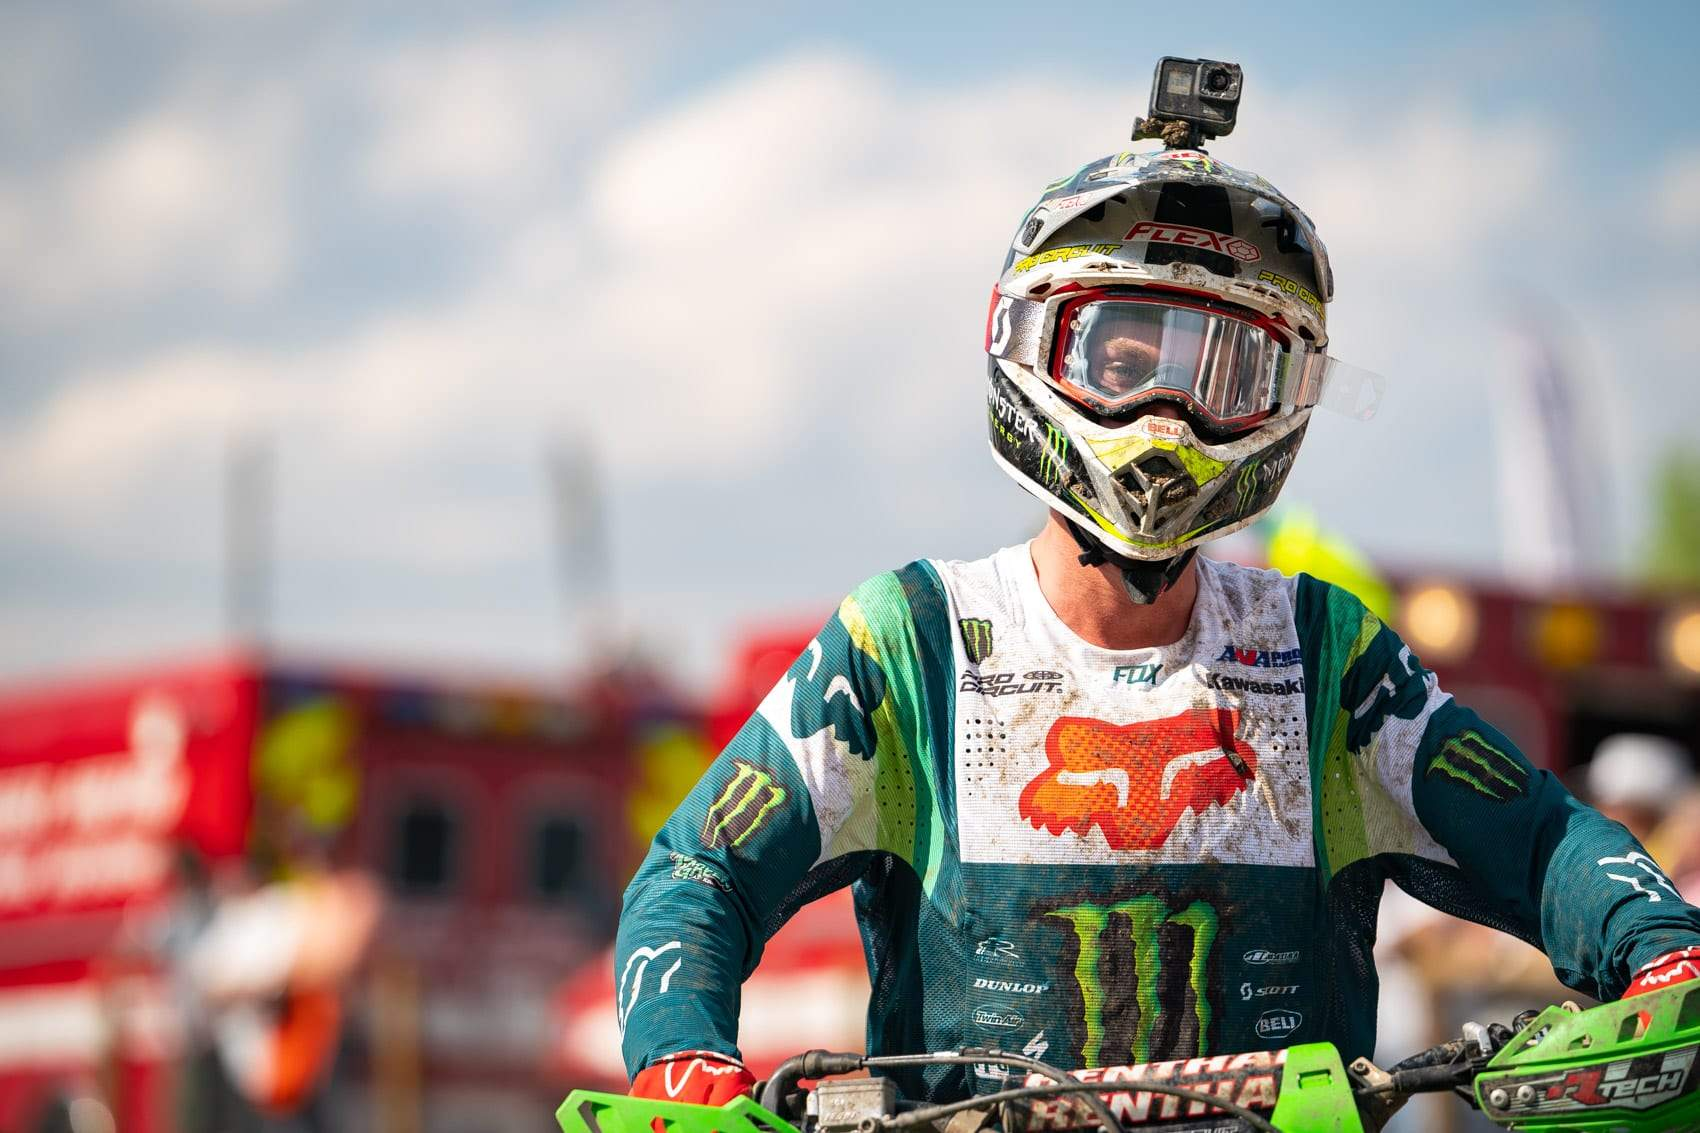 Adam Cianciarulo Wins Monster Energy Cup 2019 !